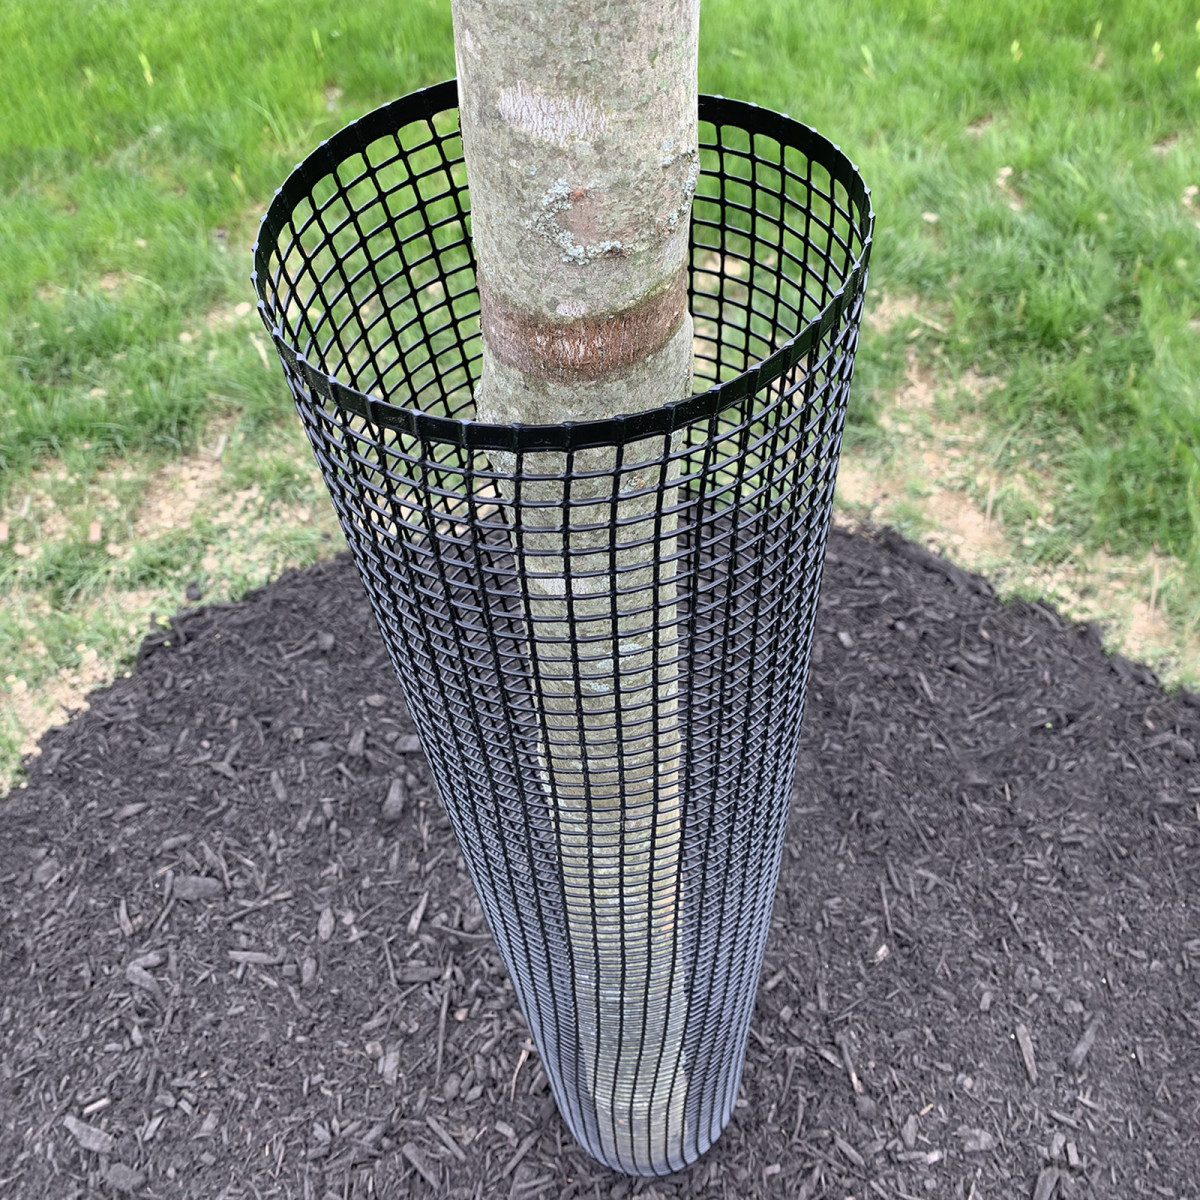 Tree guards will keep rabbits and rodents from chewing on the bark of your trees.  They are easy to use and available at almost all home and garden centers.